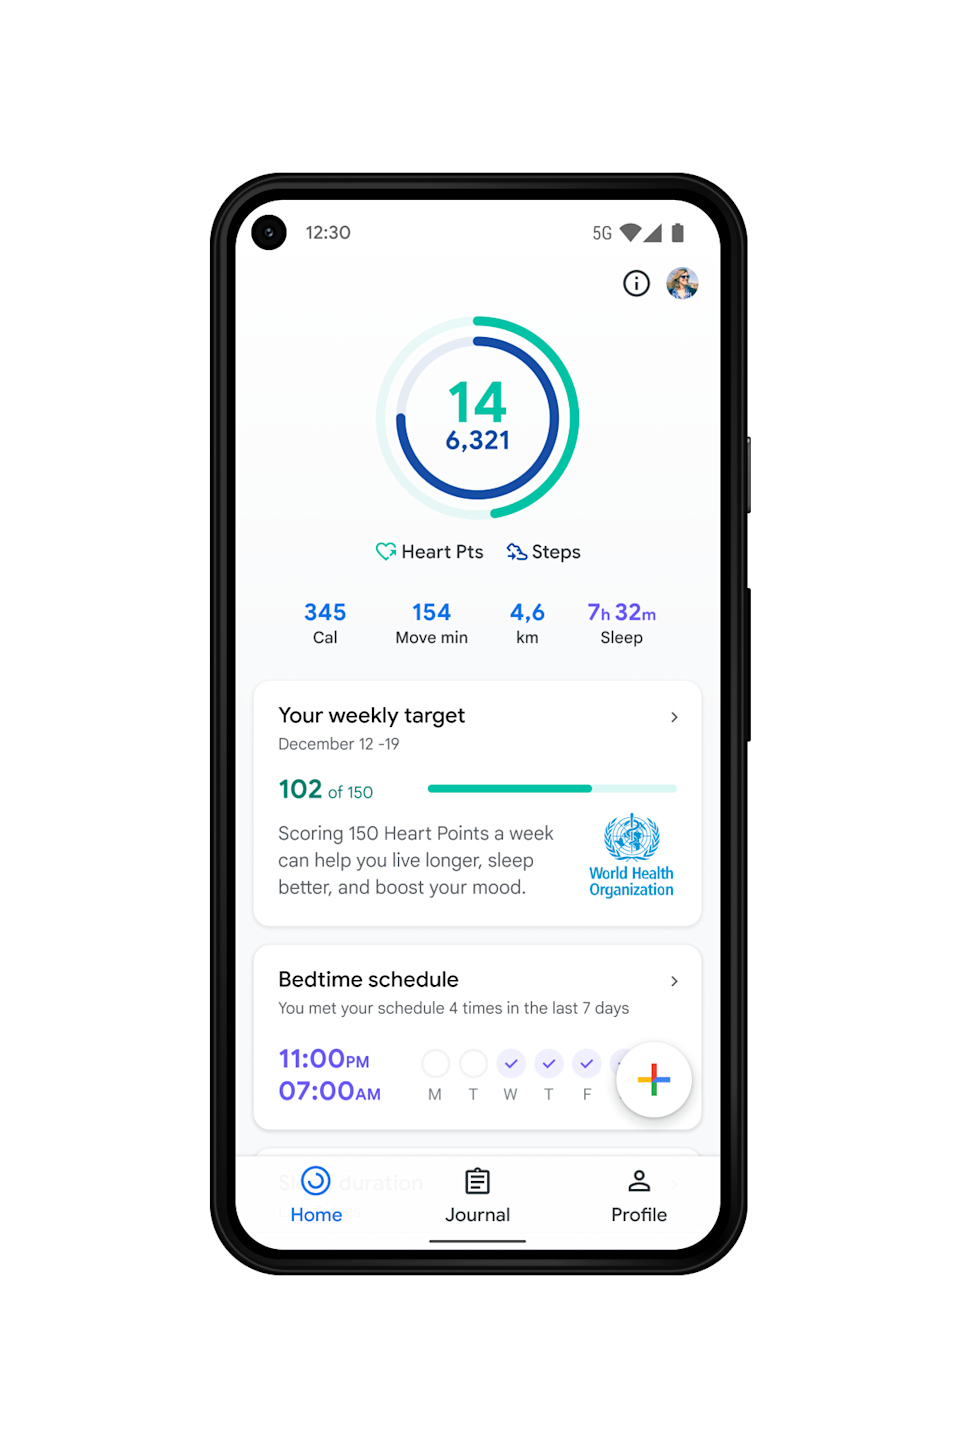 Google Fit and Wear OS updates